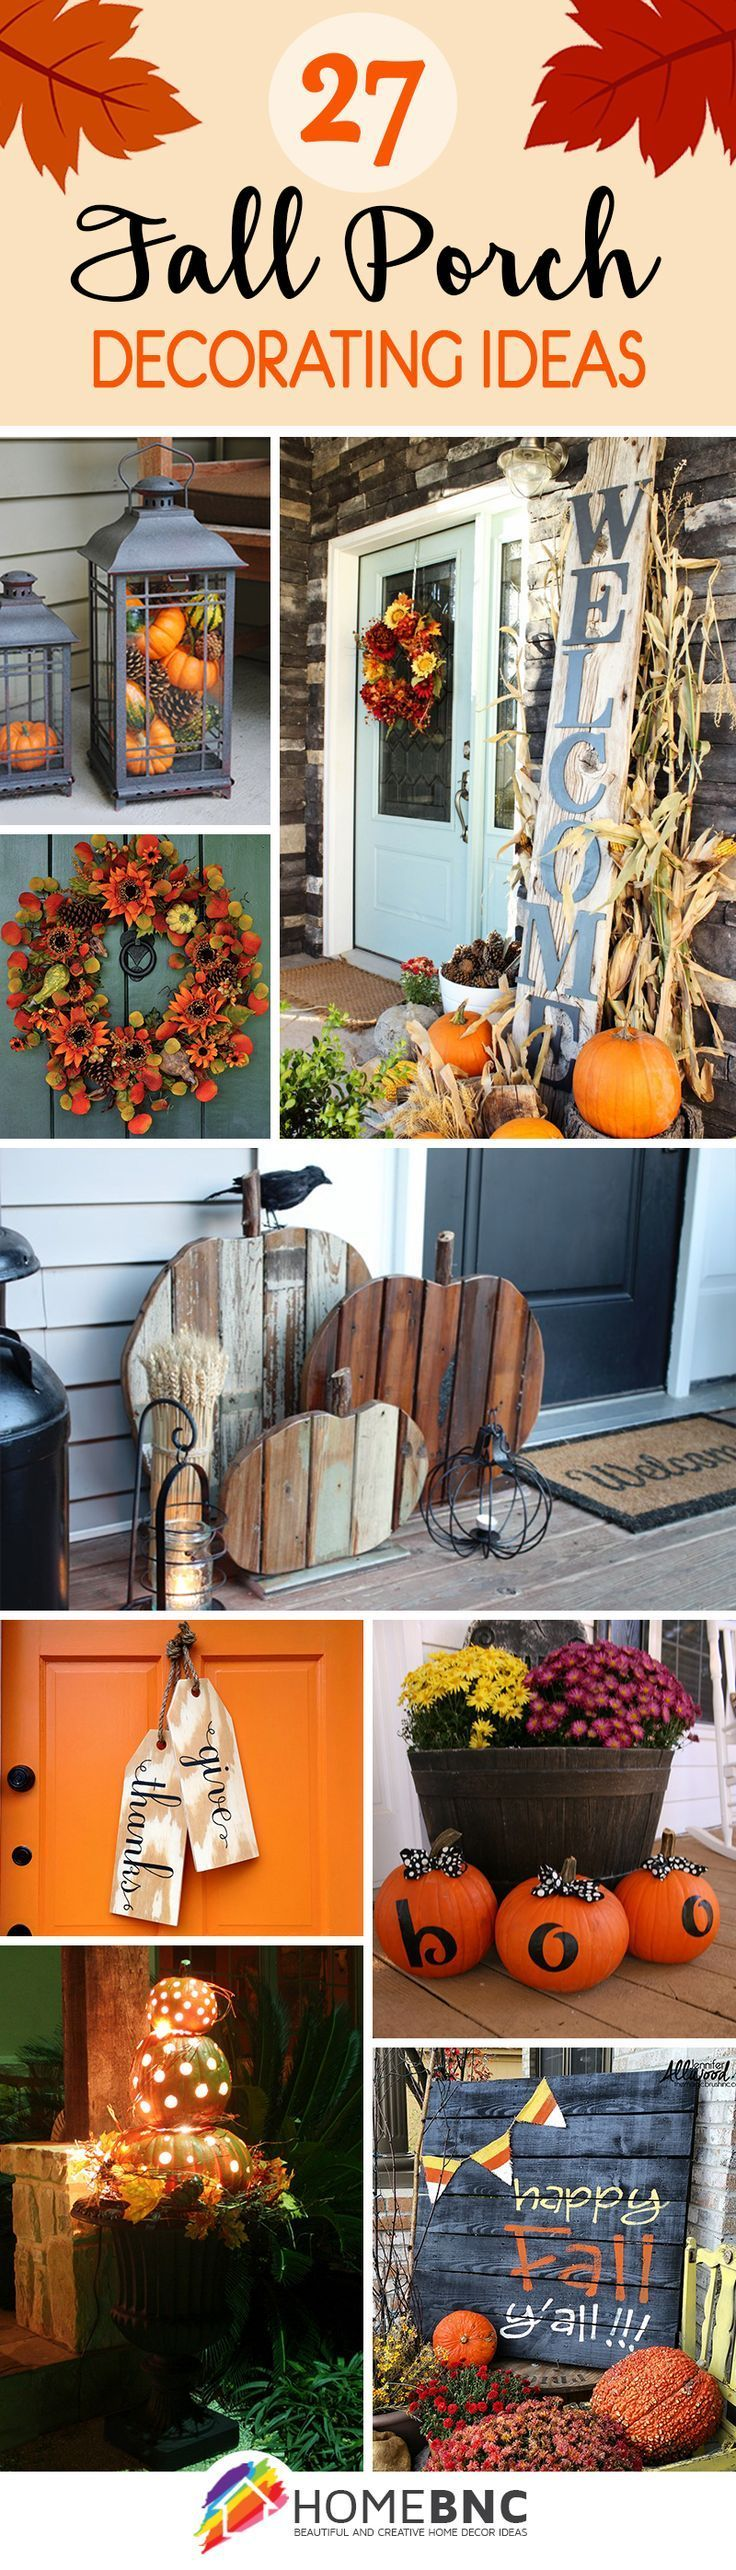 27 Creative Fall Porch Decorating Ideas to